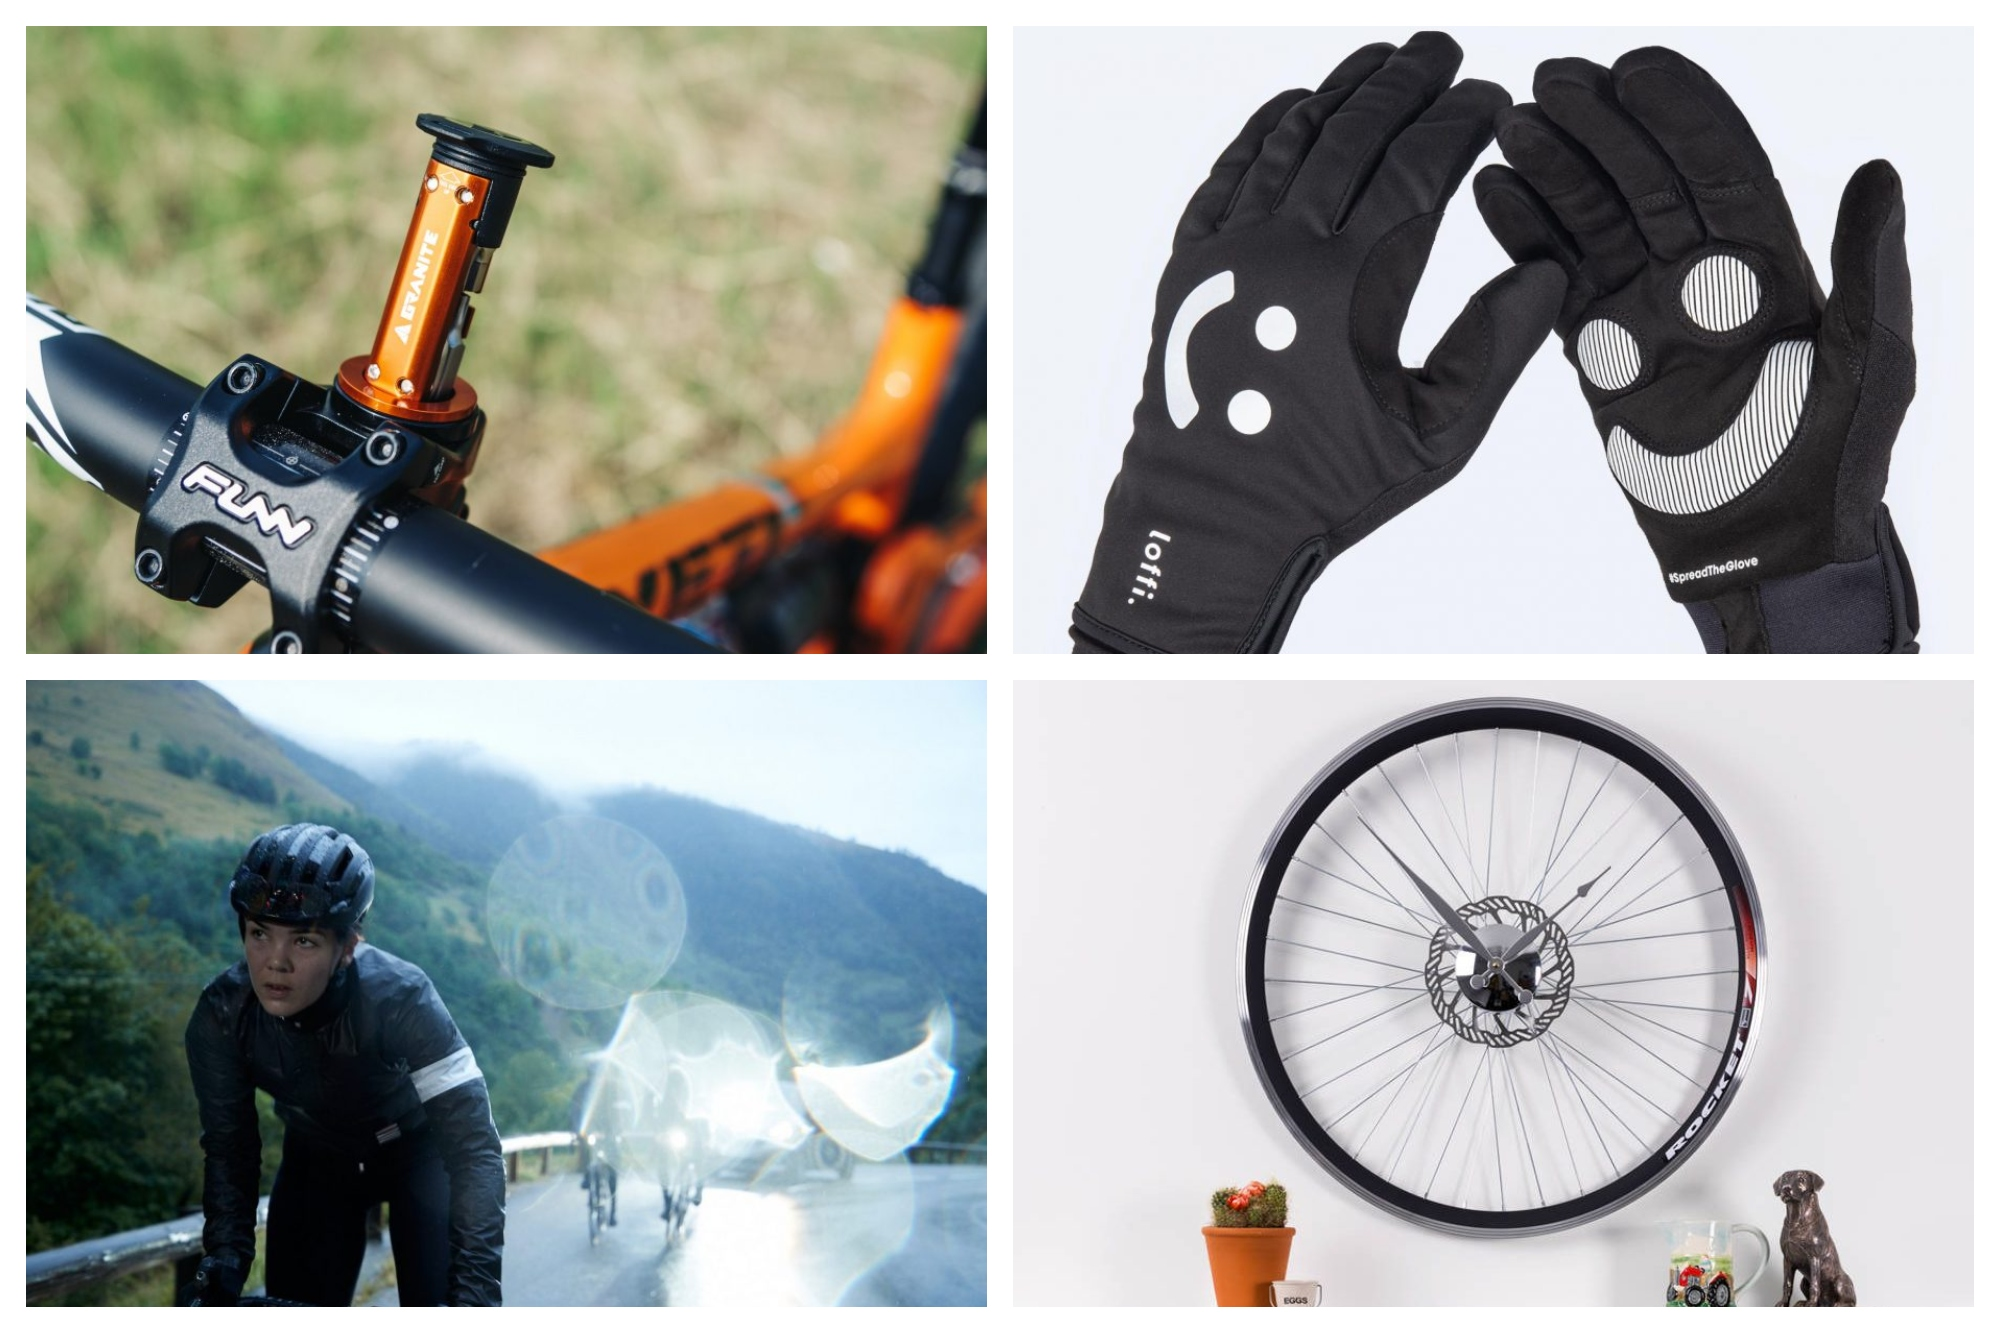 Best Christmas gifts for cyclists 2019